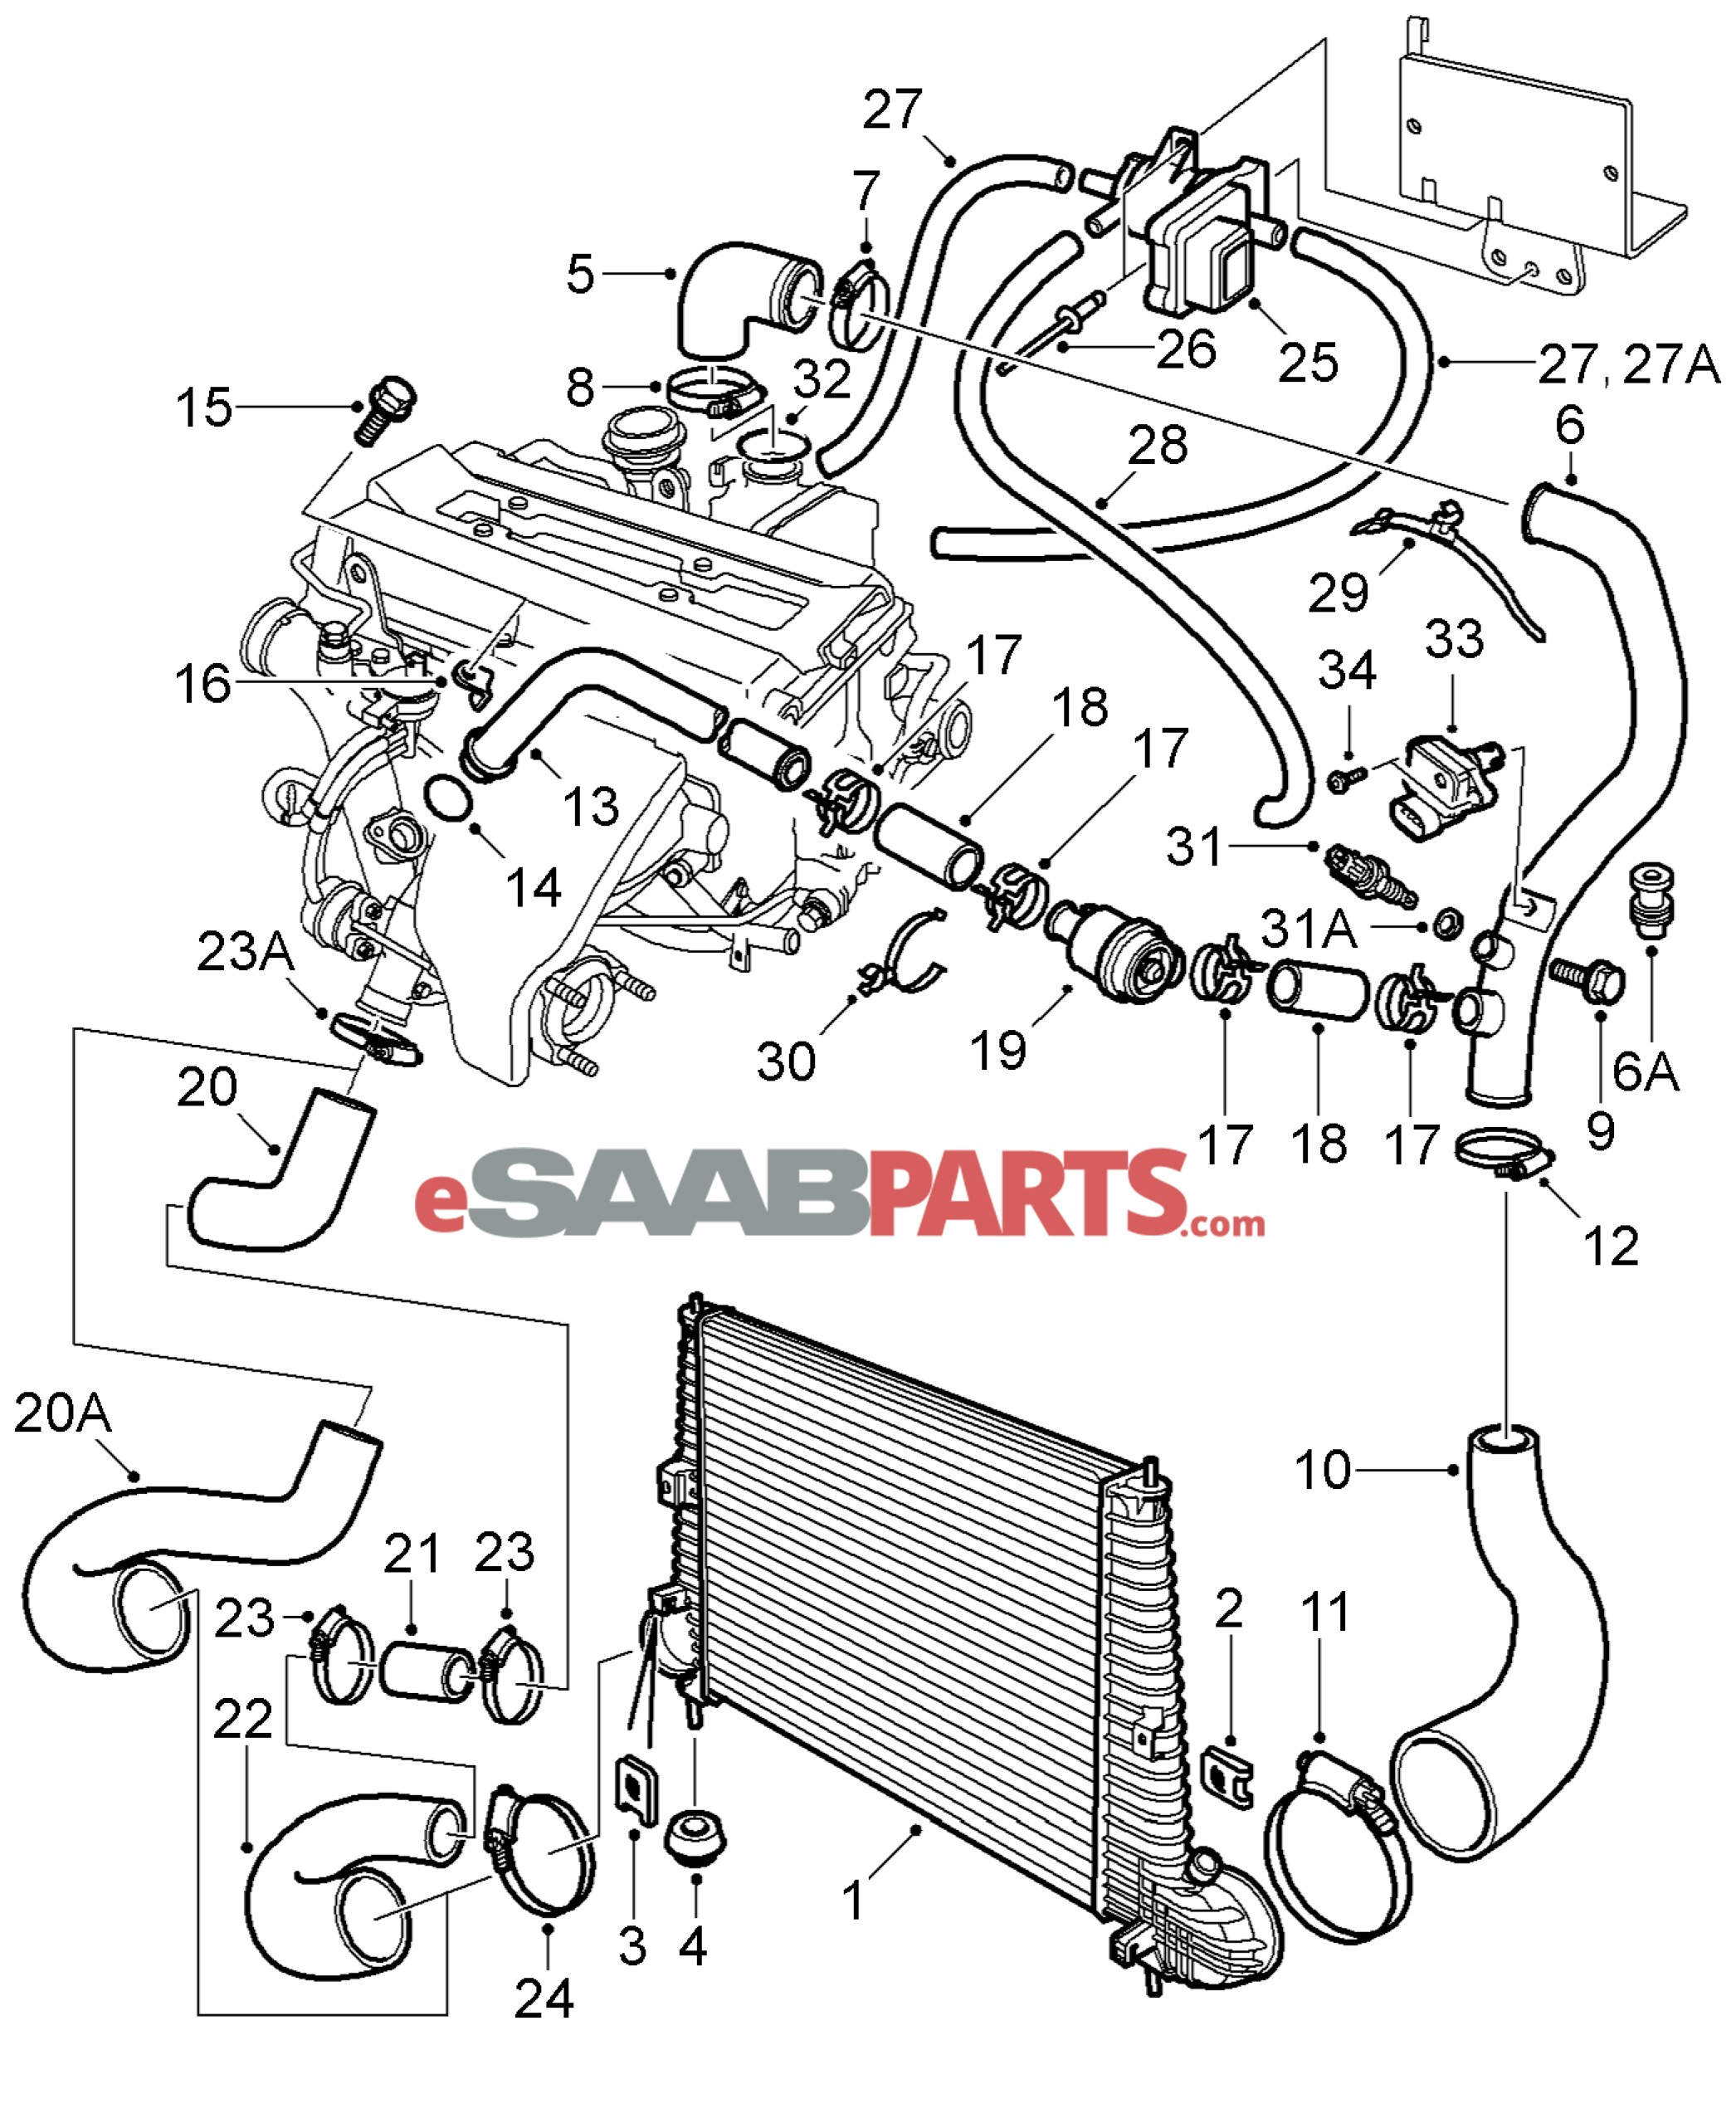 2003 pontiac grand am v6 engine diagram